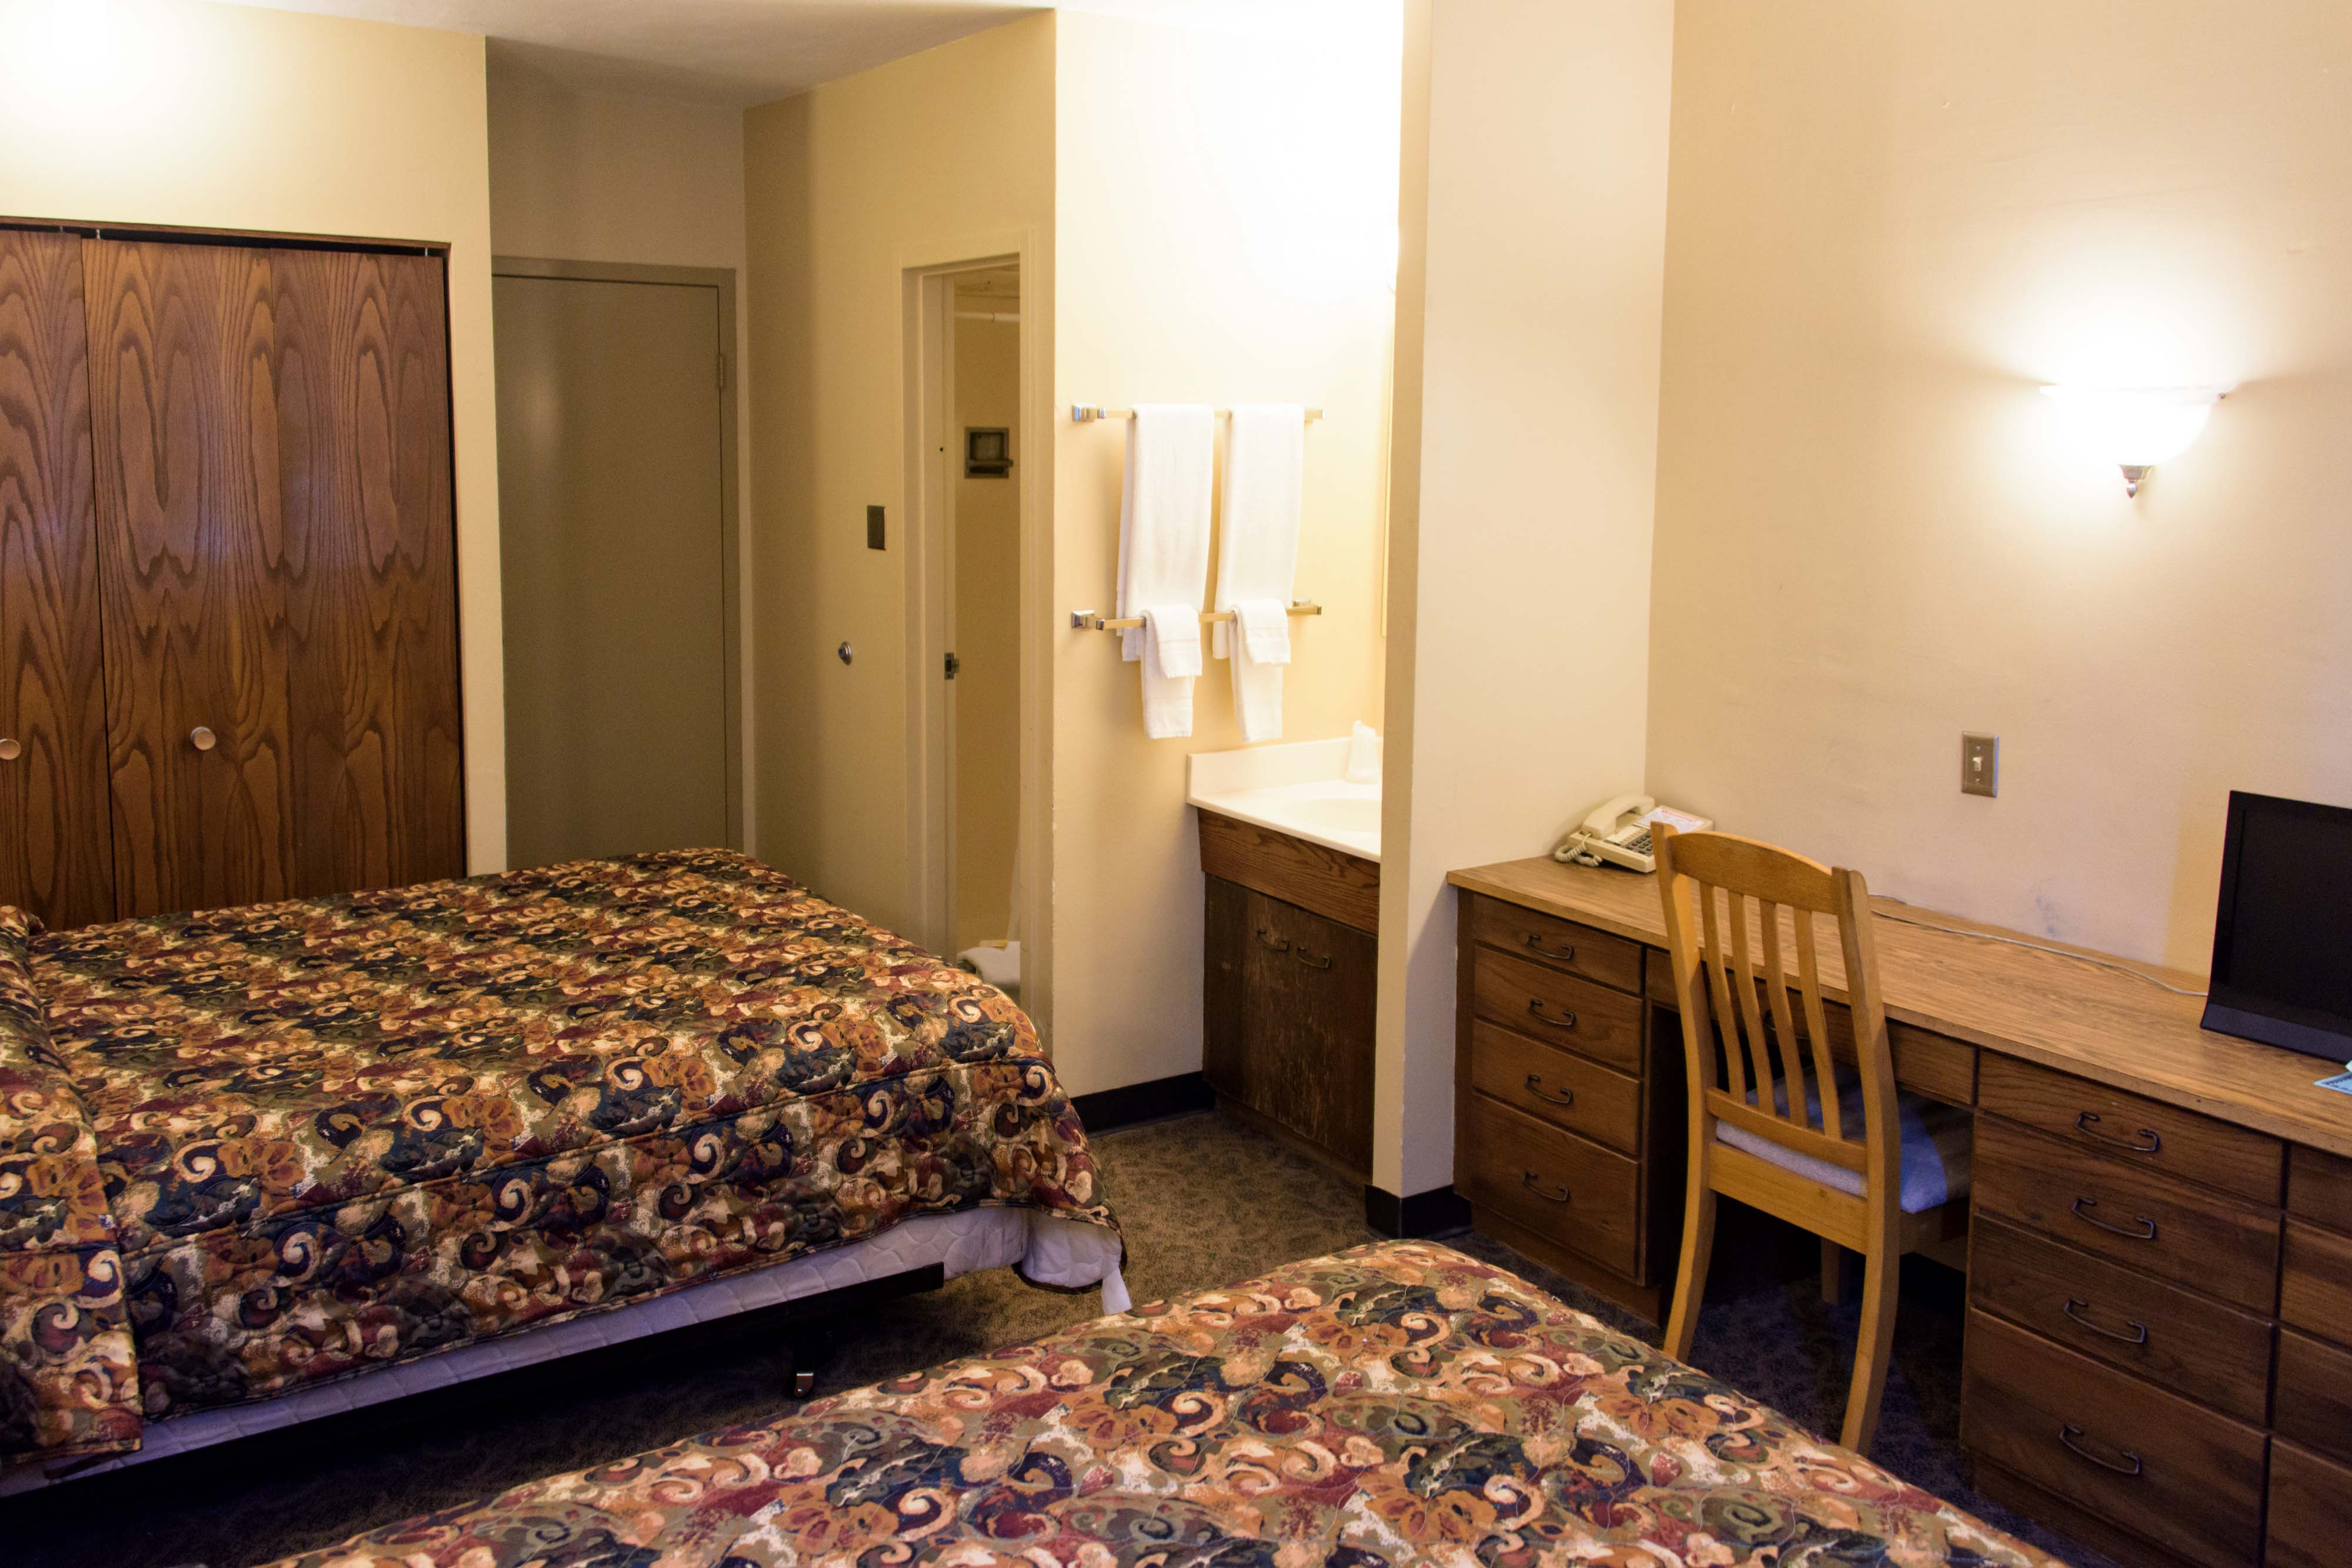 A view of Prescott Hall's standard guest room showcasing the beds, desk, and sink area